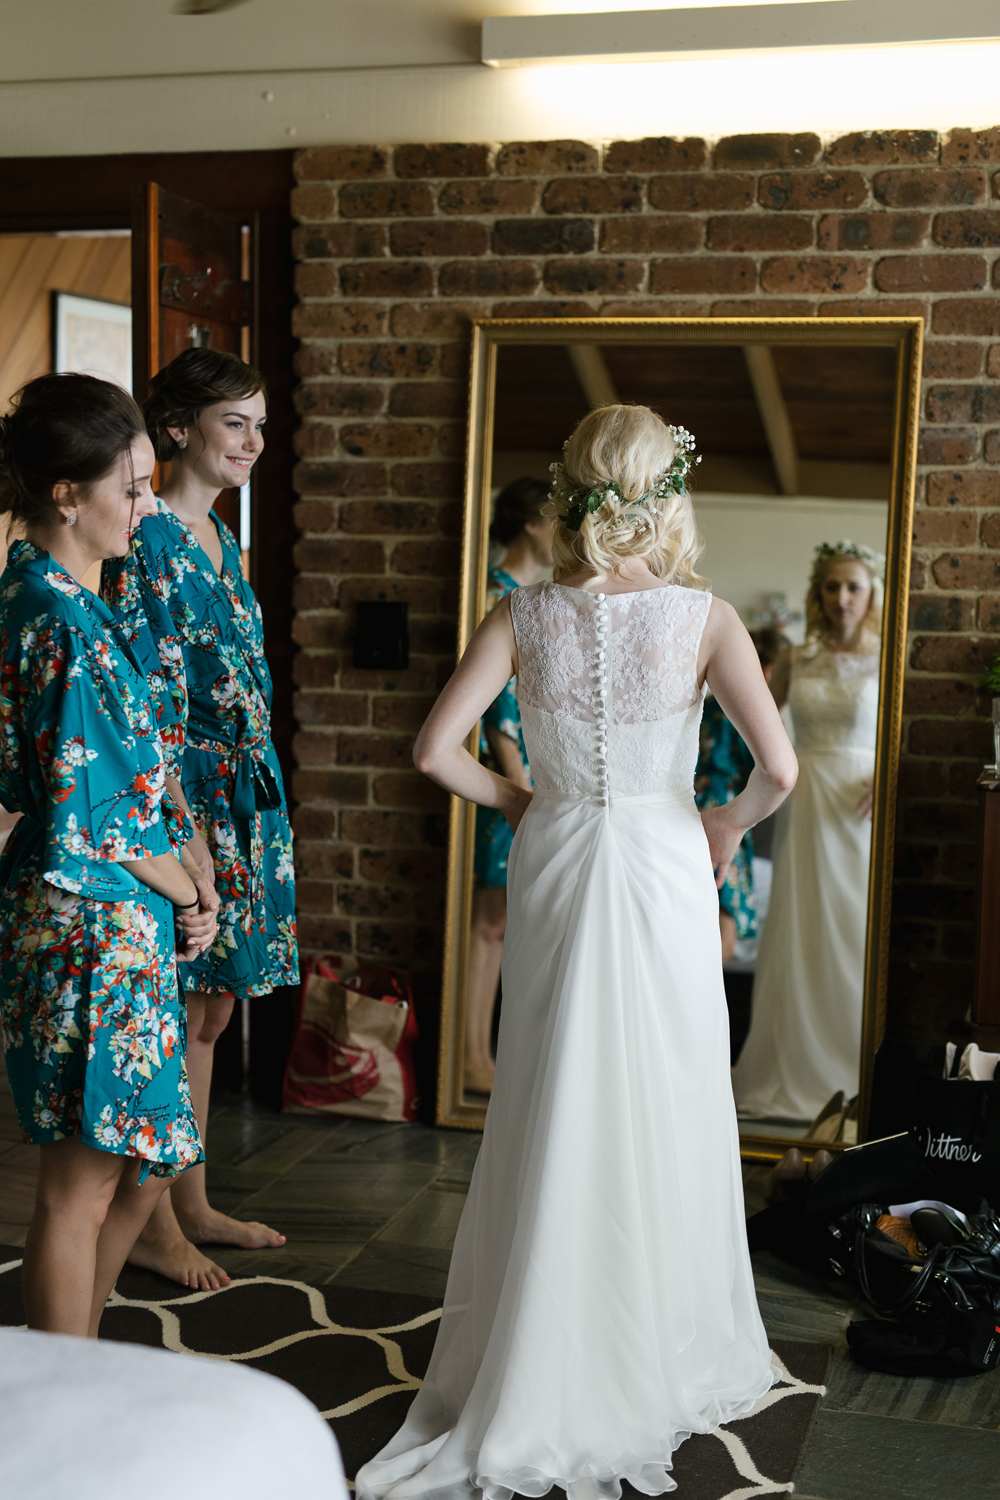 021-Byron-Bay-Wedding-Photographer-Carly-Tia-Photography.jpg